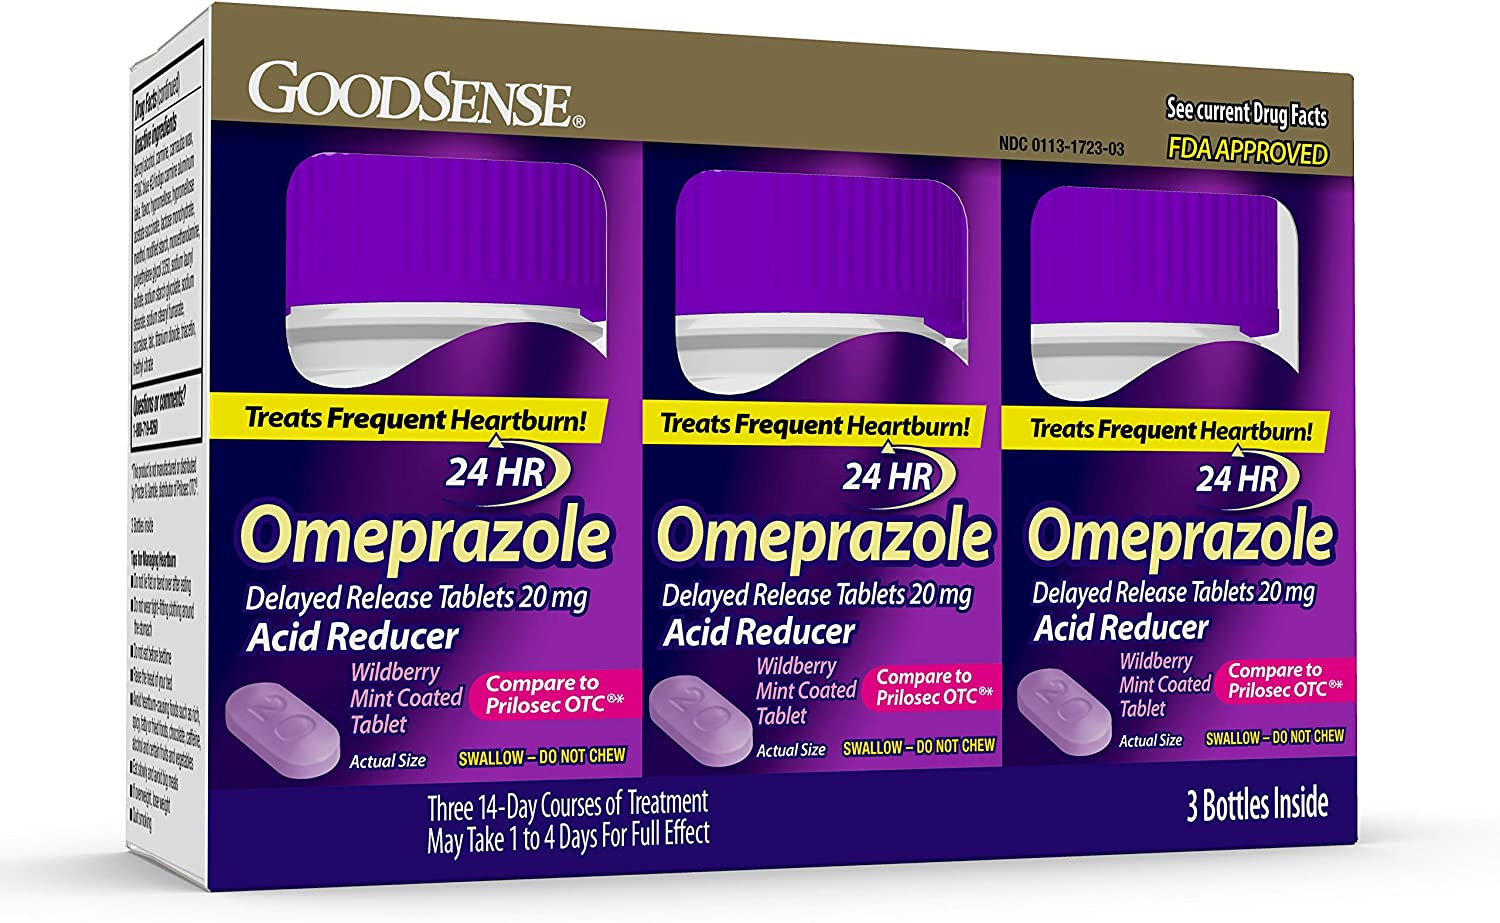 GoodSense Omeprazole Delayed Release Tablets 20 mg, Coated With Wildberry Mint Flavor, Acid Reducer, Treats Heartburn, 42 Count